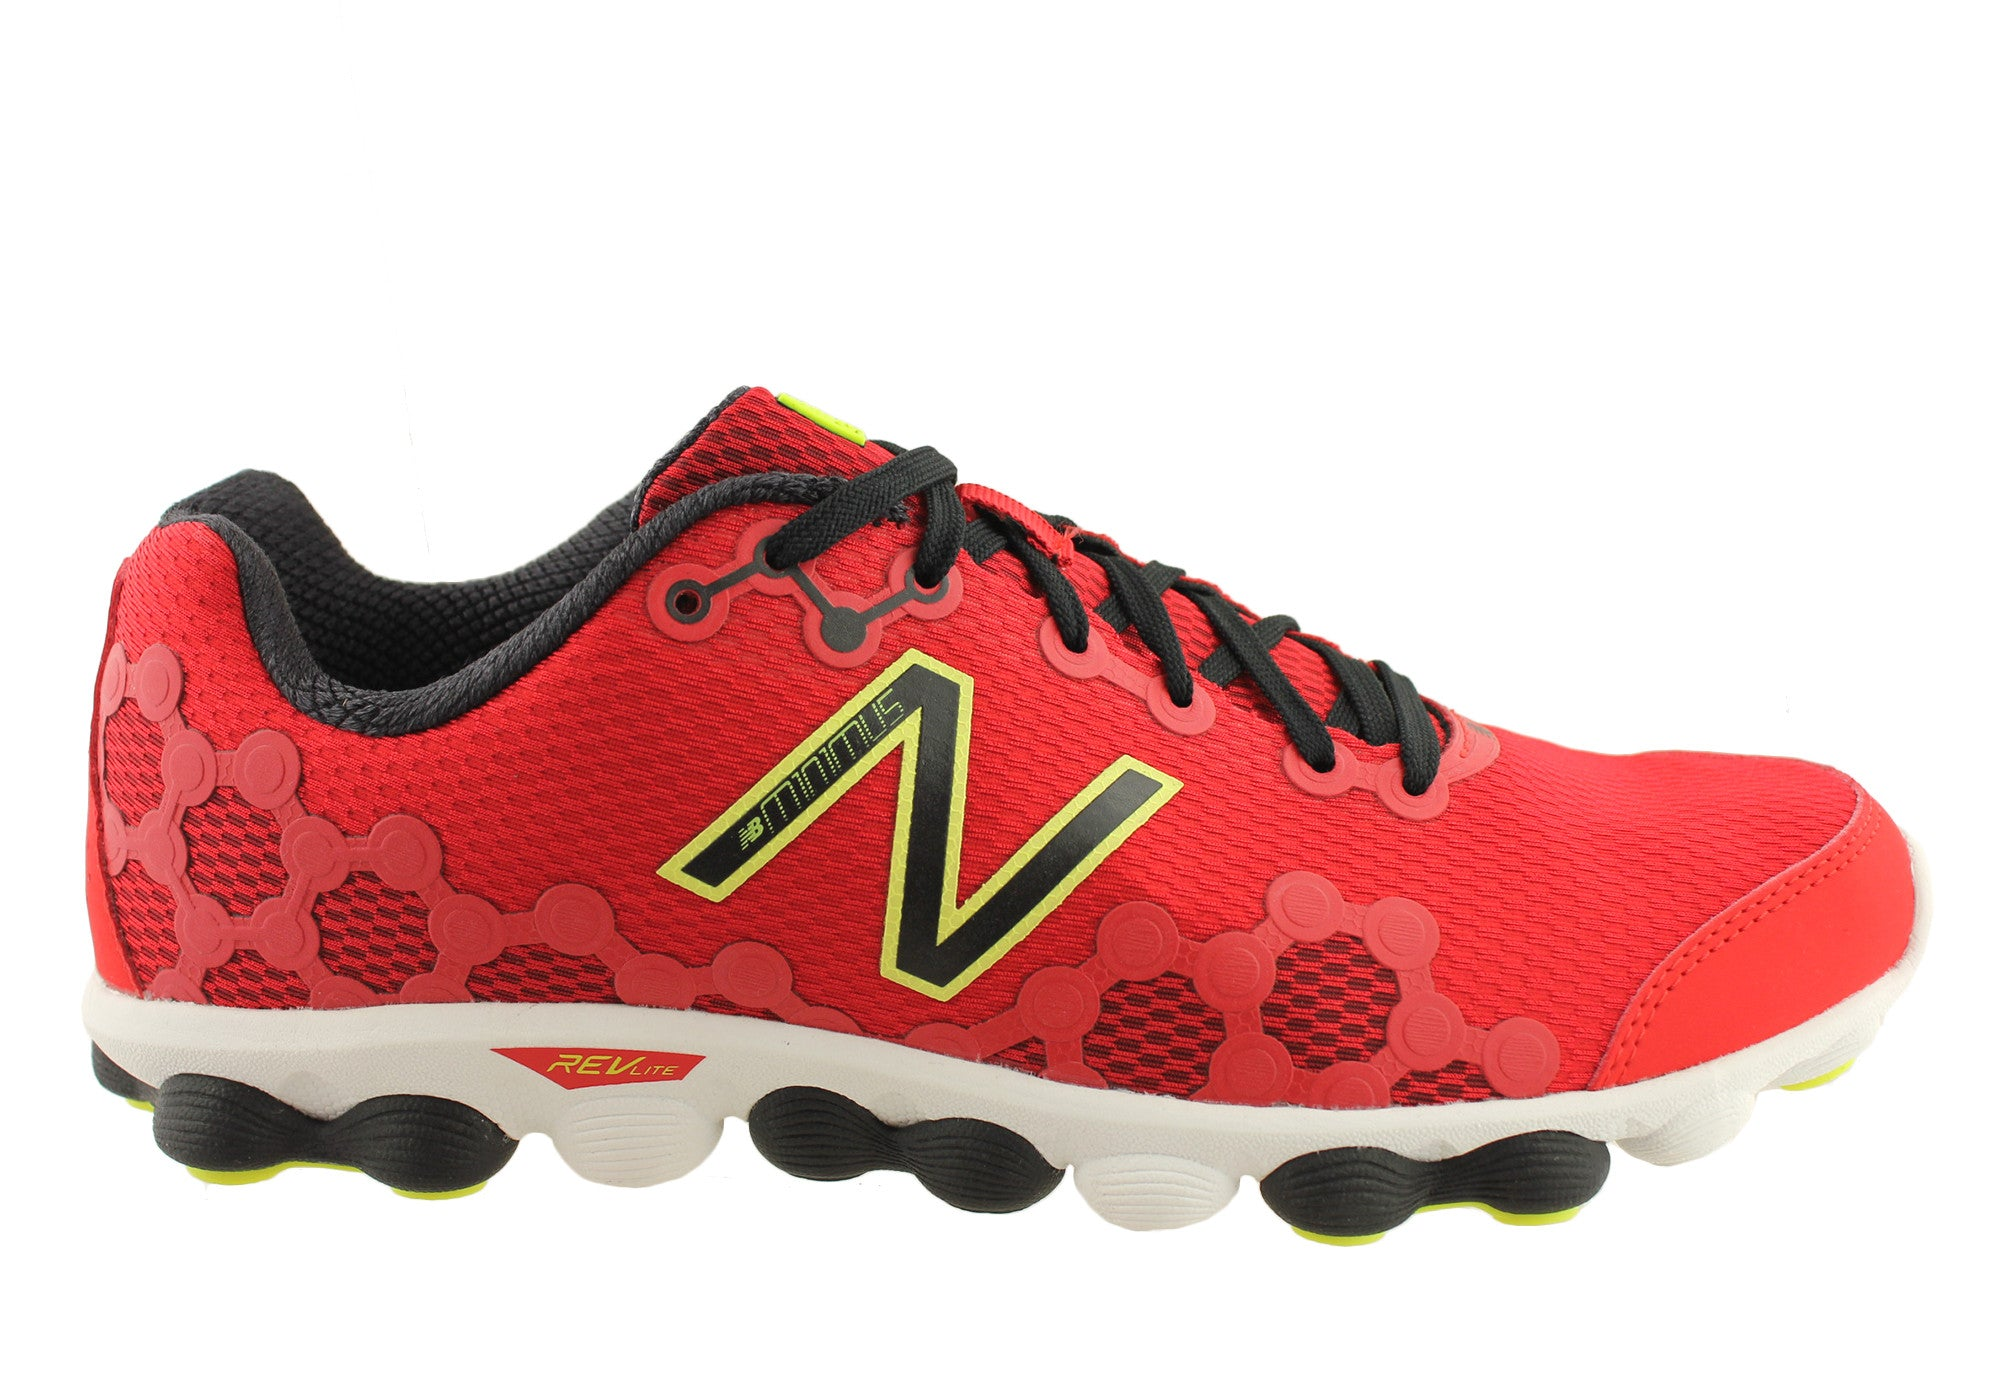 New Balance M3090RB1 Mens Sports/Running Shoes